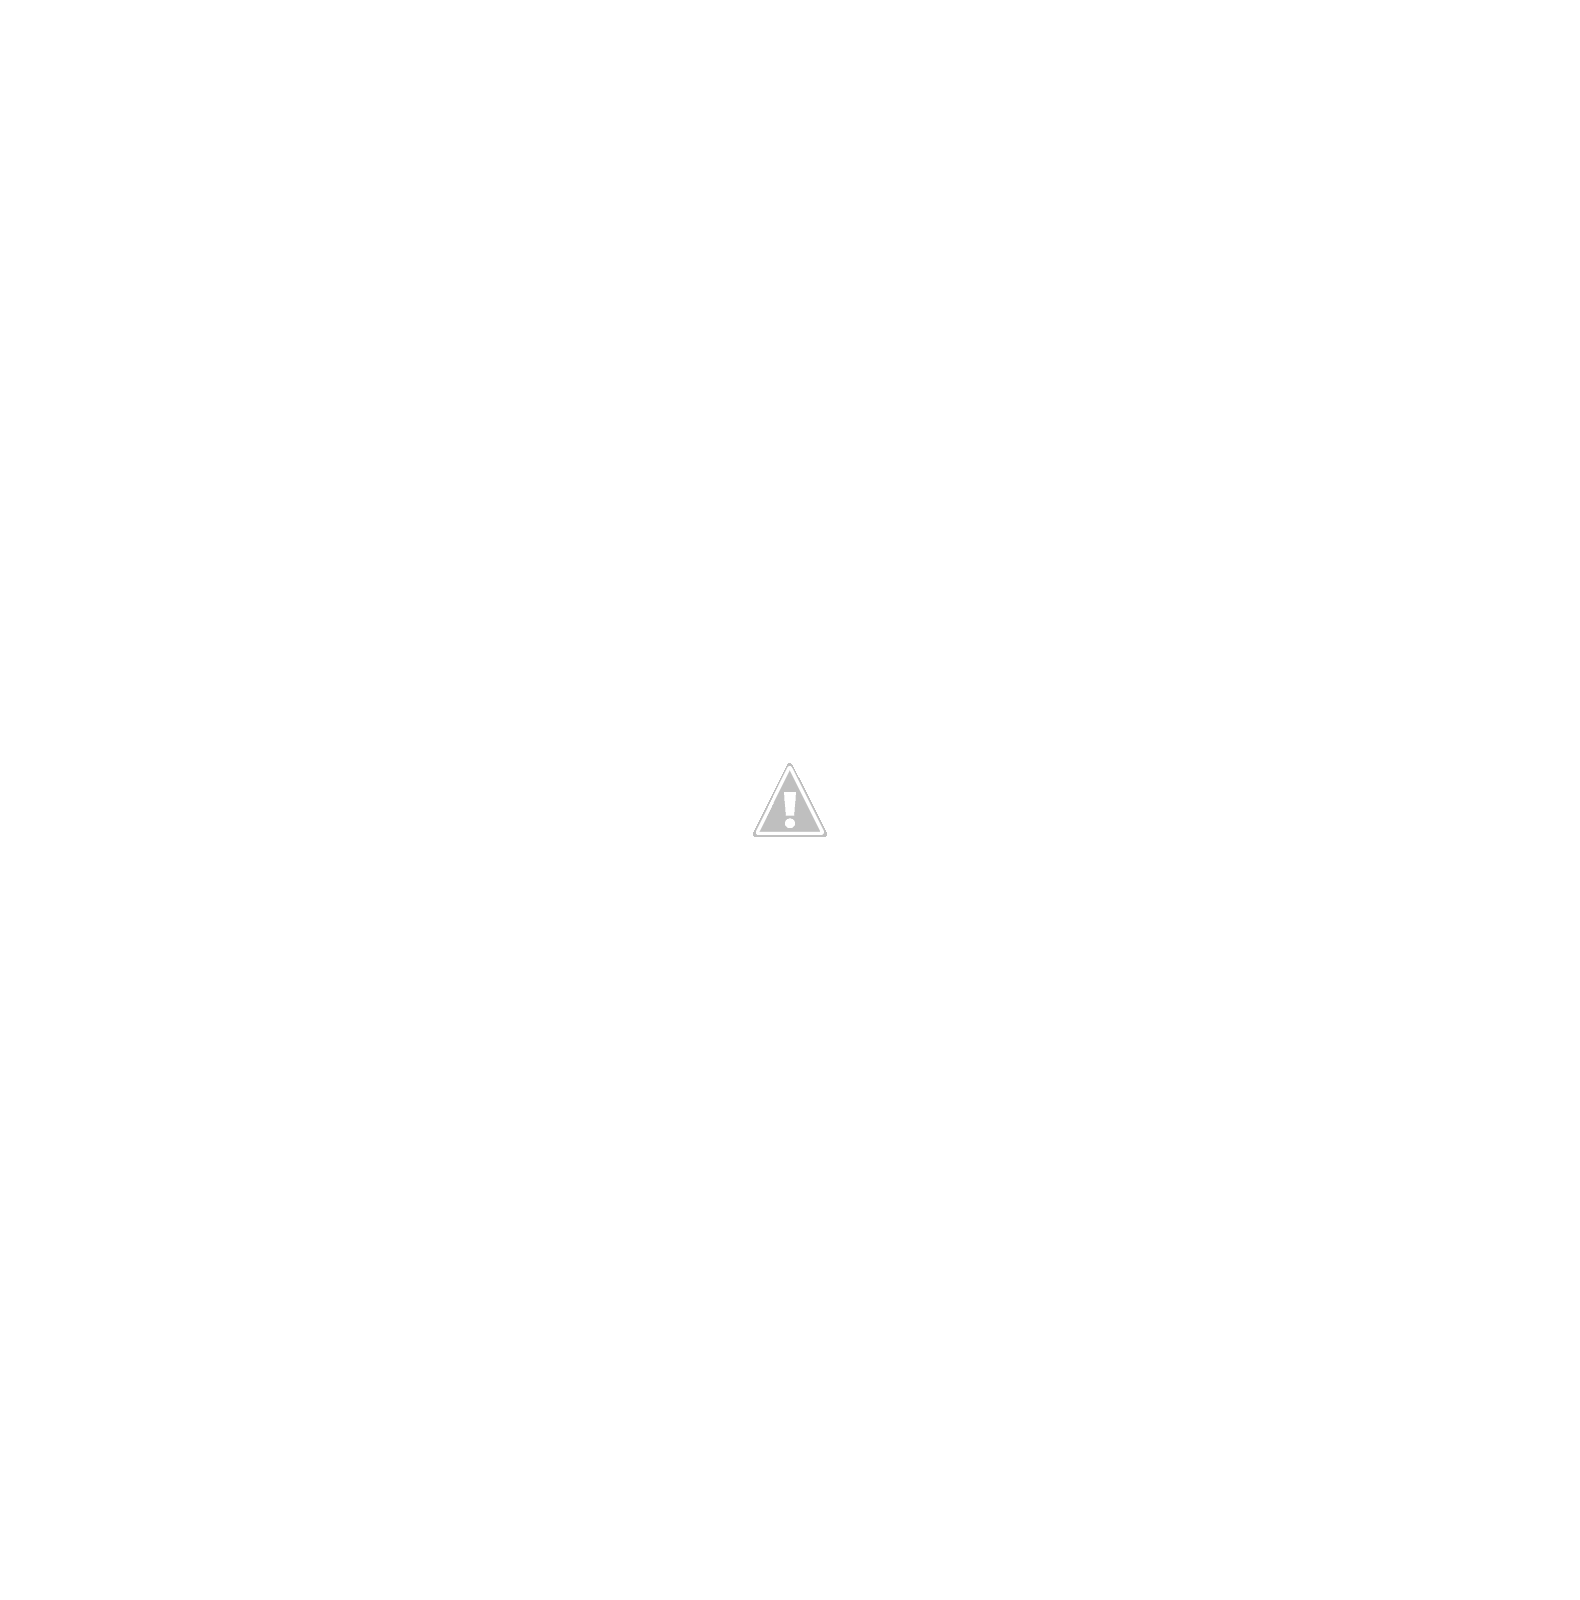 Our Identity - Engaging LGM